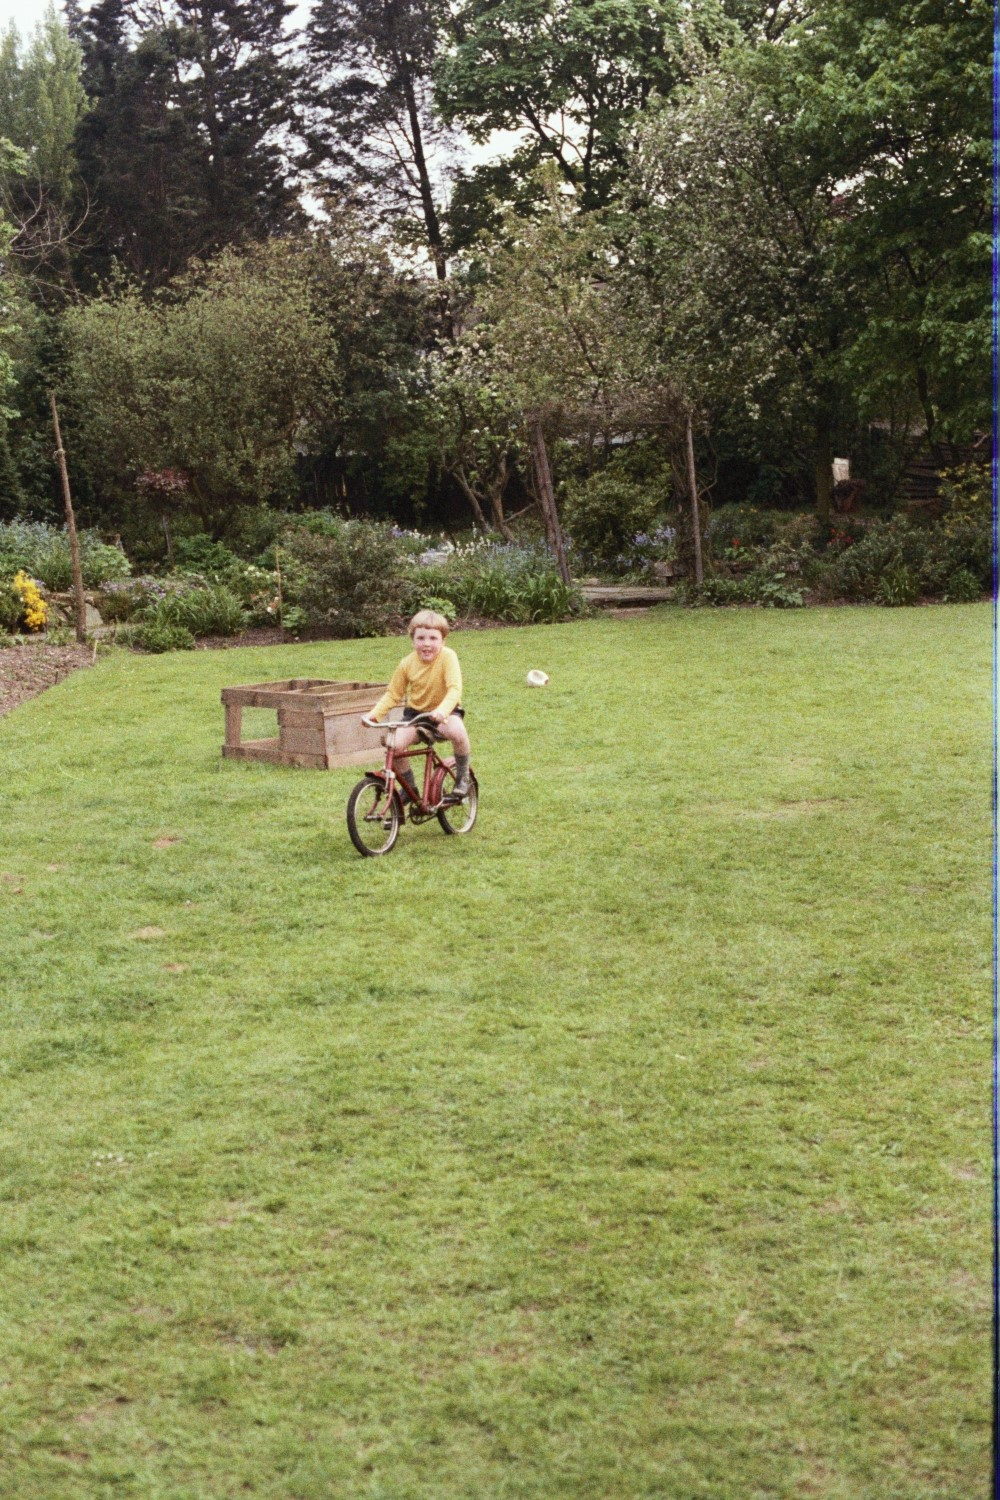 Matt learns to ride a Bicycle in the garden